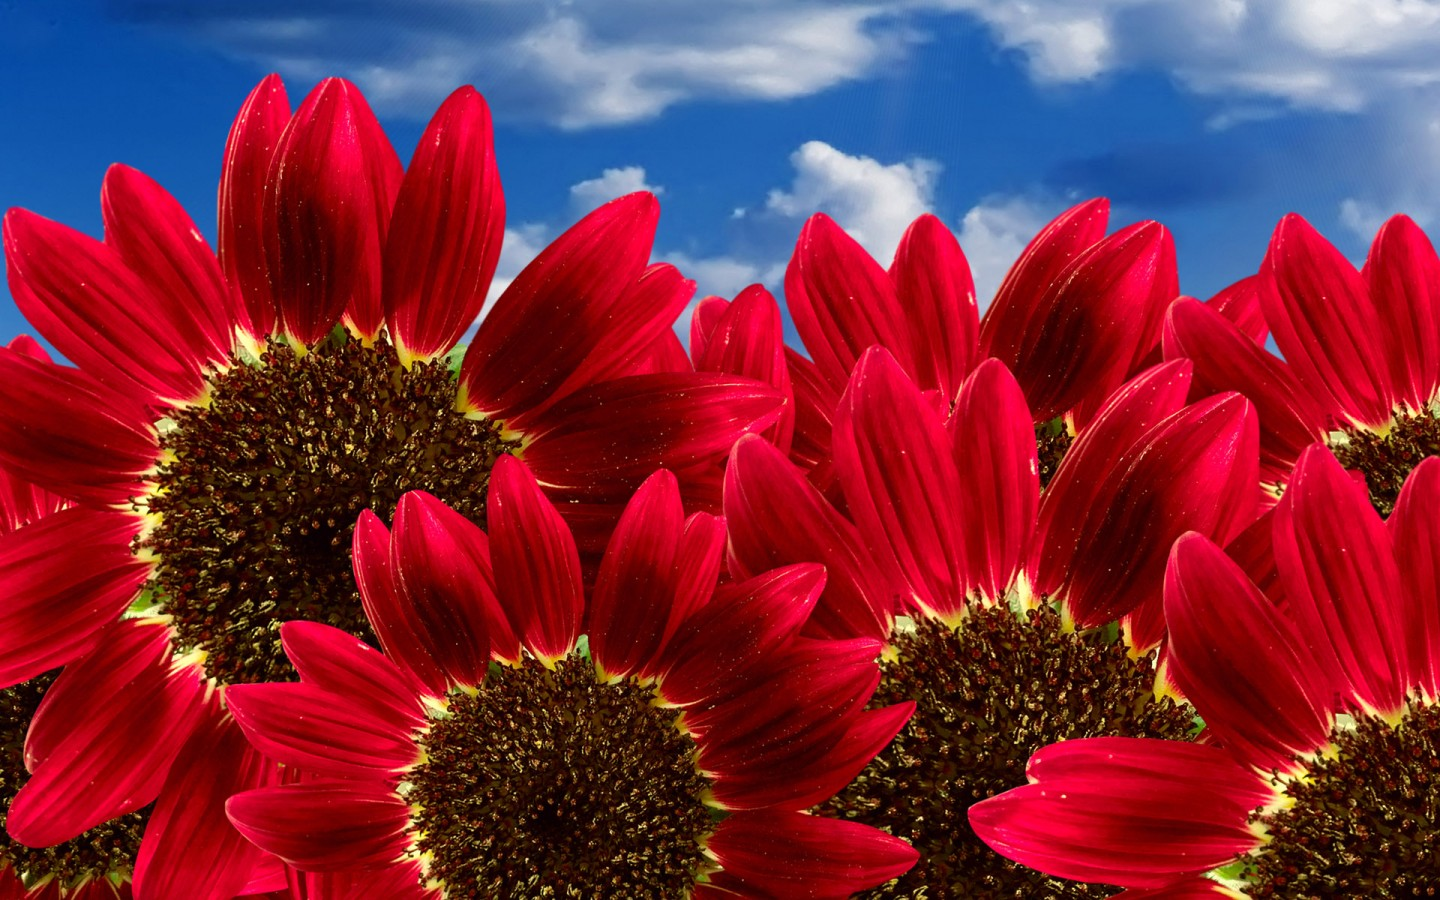 Fall Desktop Wallpaper With Sunflowers Pure Red Sunflowers Wallpapers Hd Wallpapers Id 9882